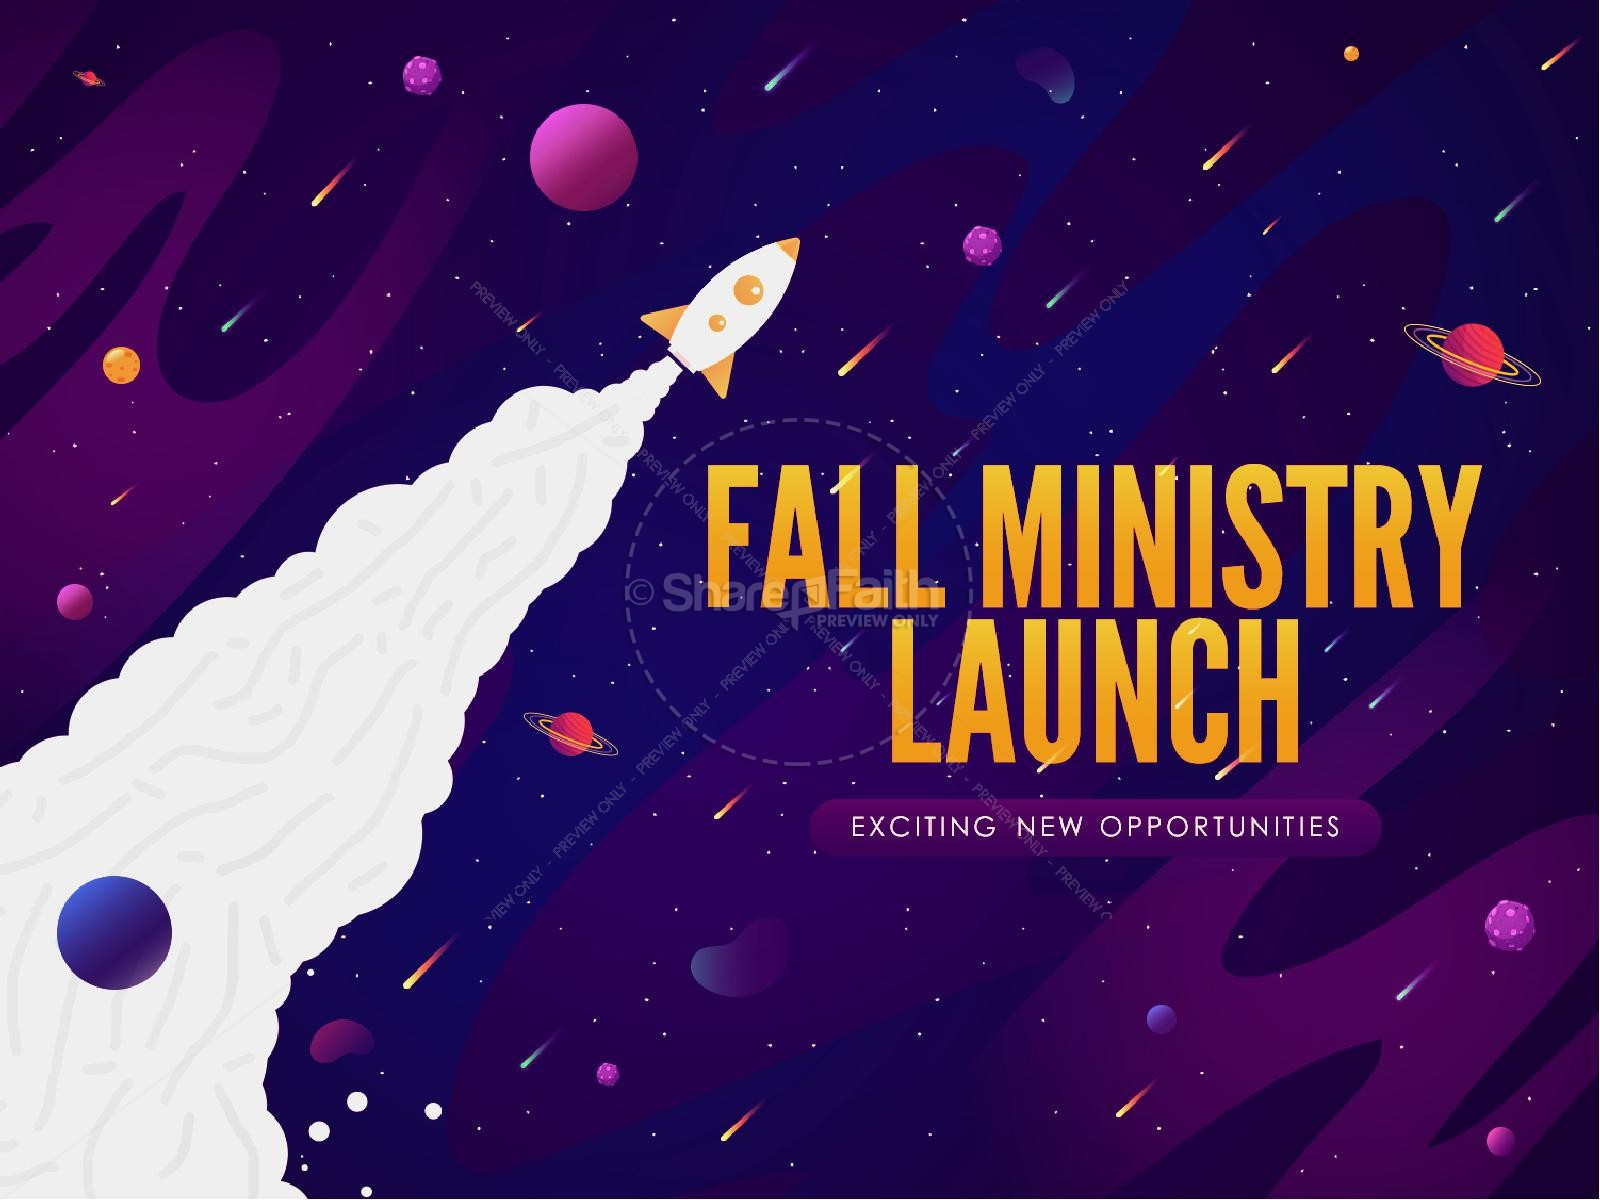 Fall Ministry Launch Church Title Graphic | slide 1